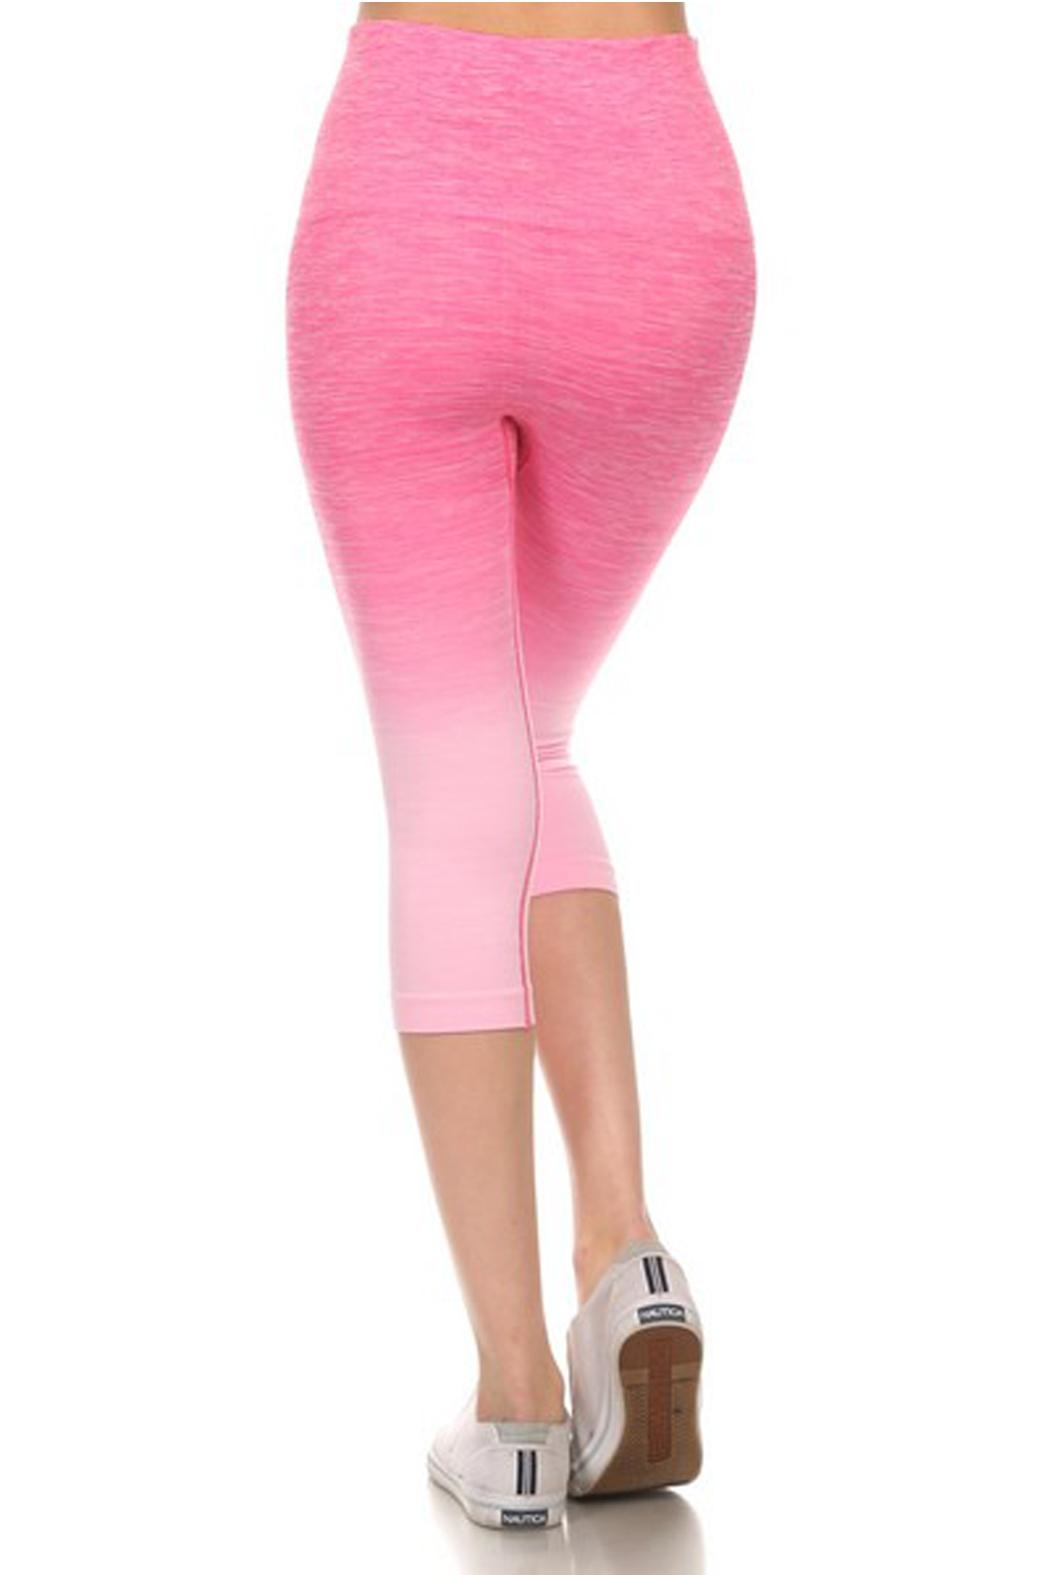 JChronicles Ombree Capri Legging - Side Cropped Image